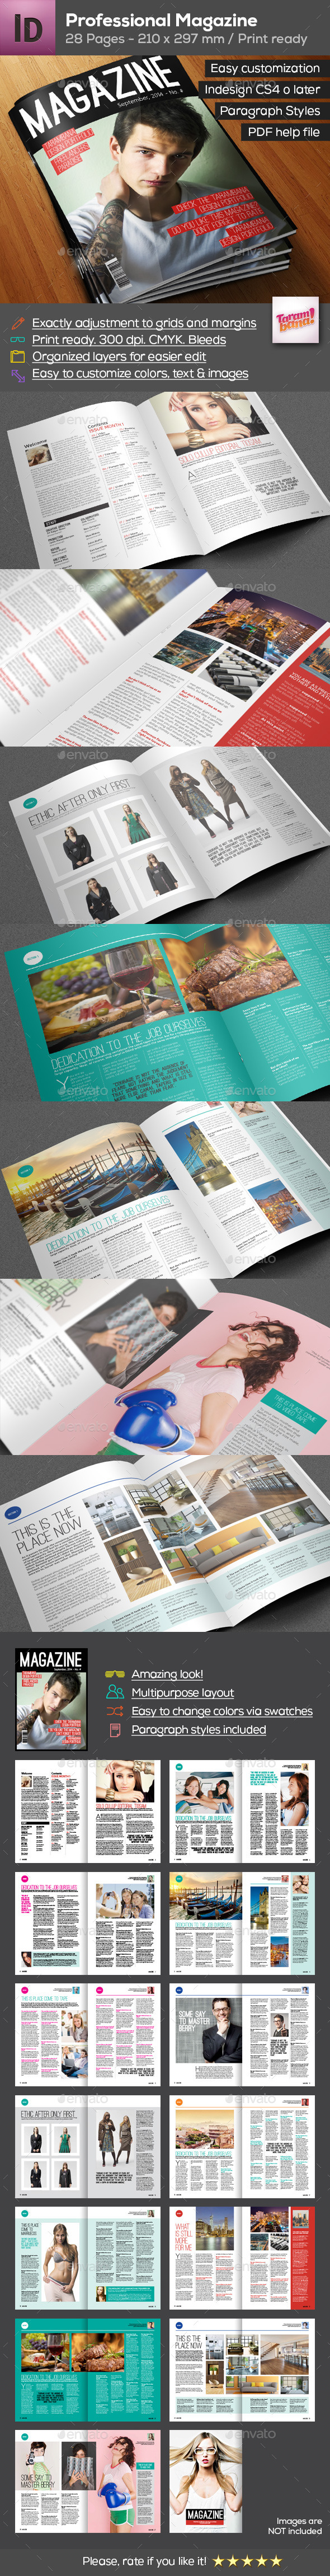 Professional Magazine A4 - 28 pages  - Magazines Print Templates